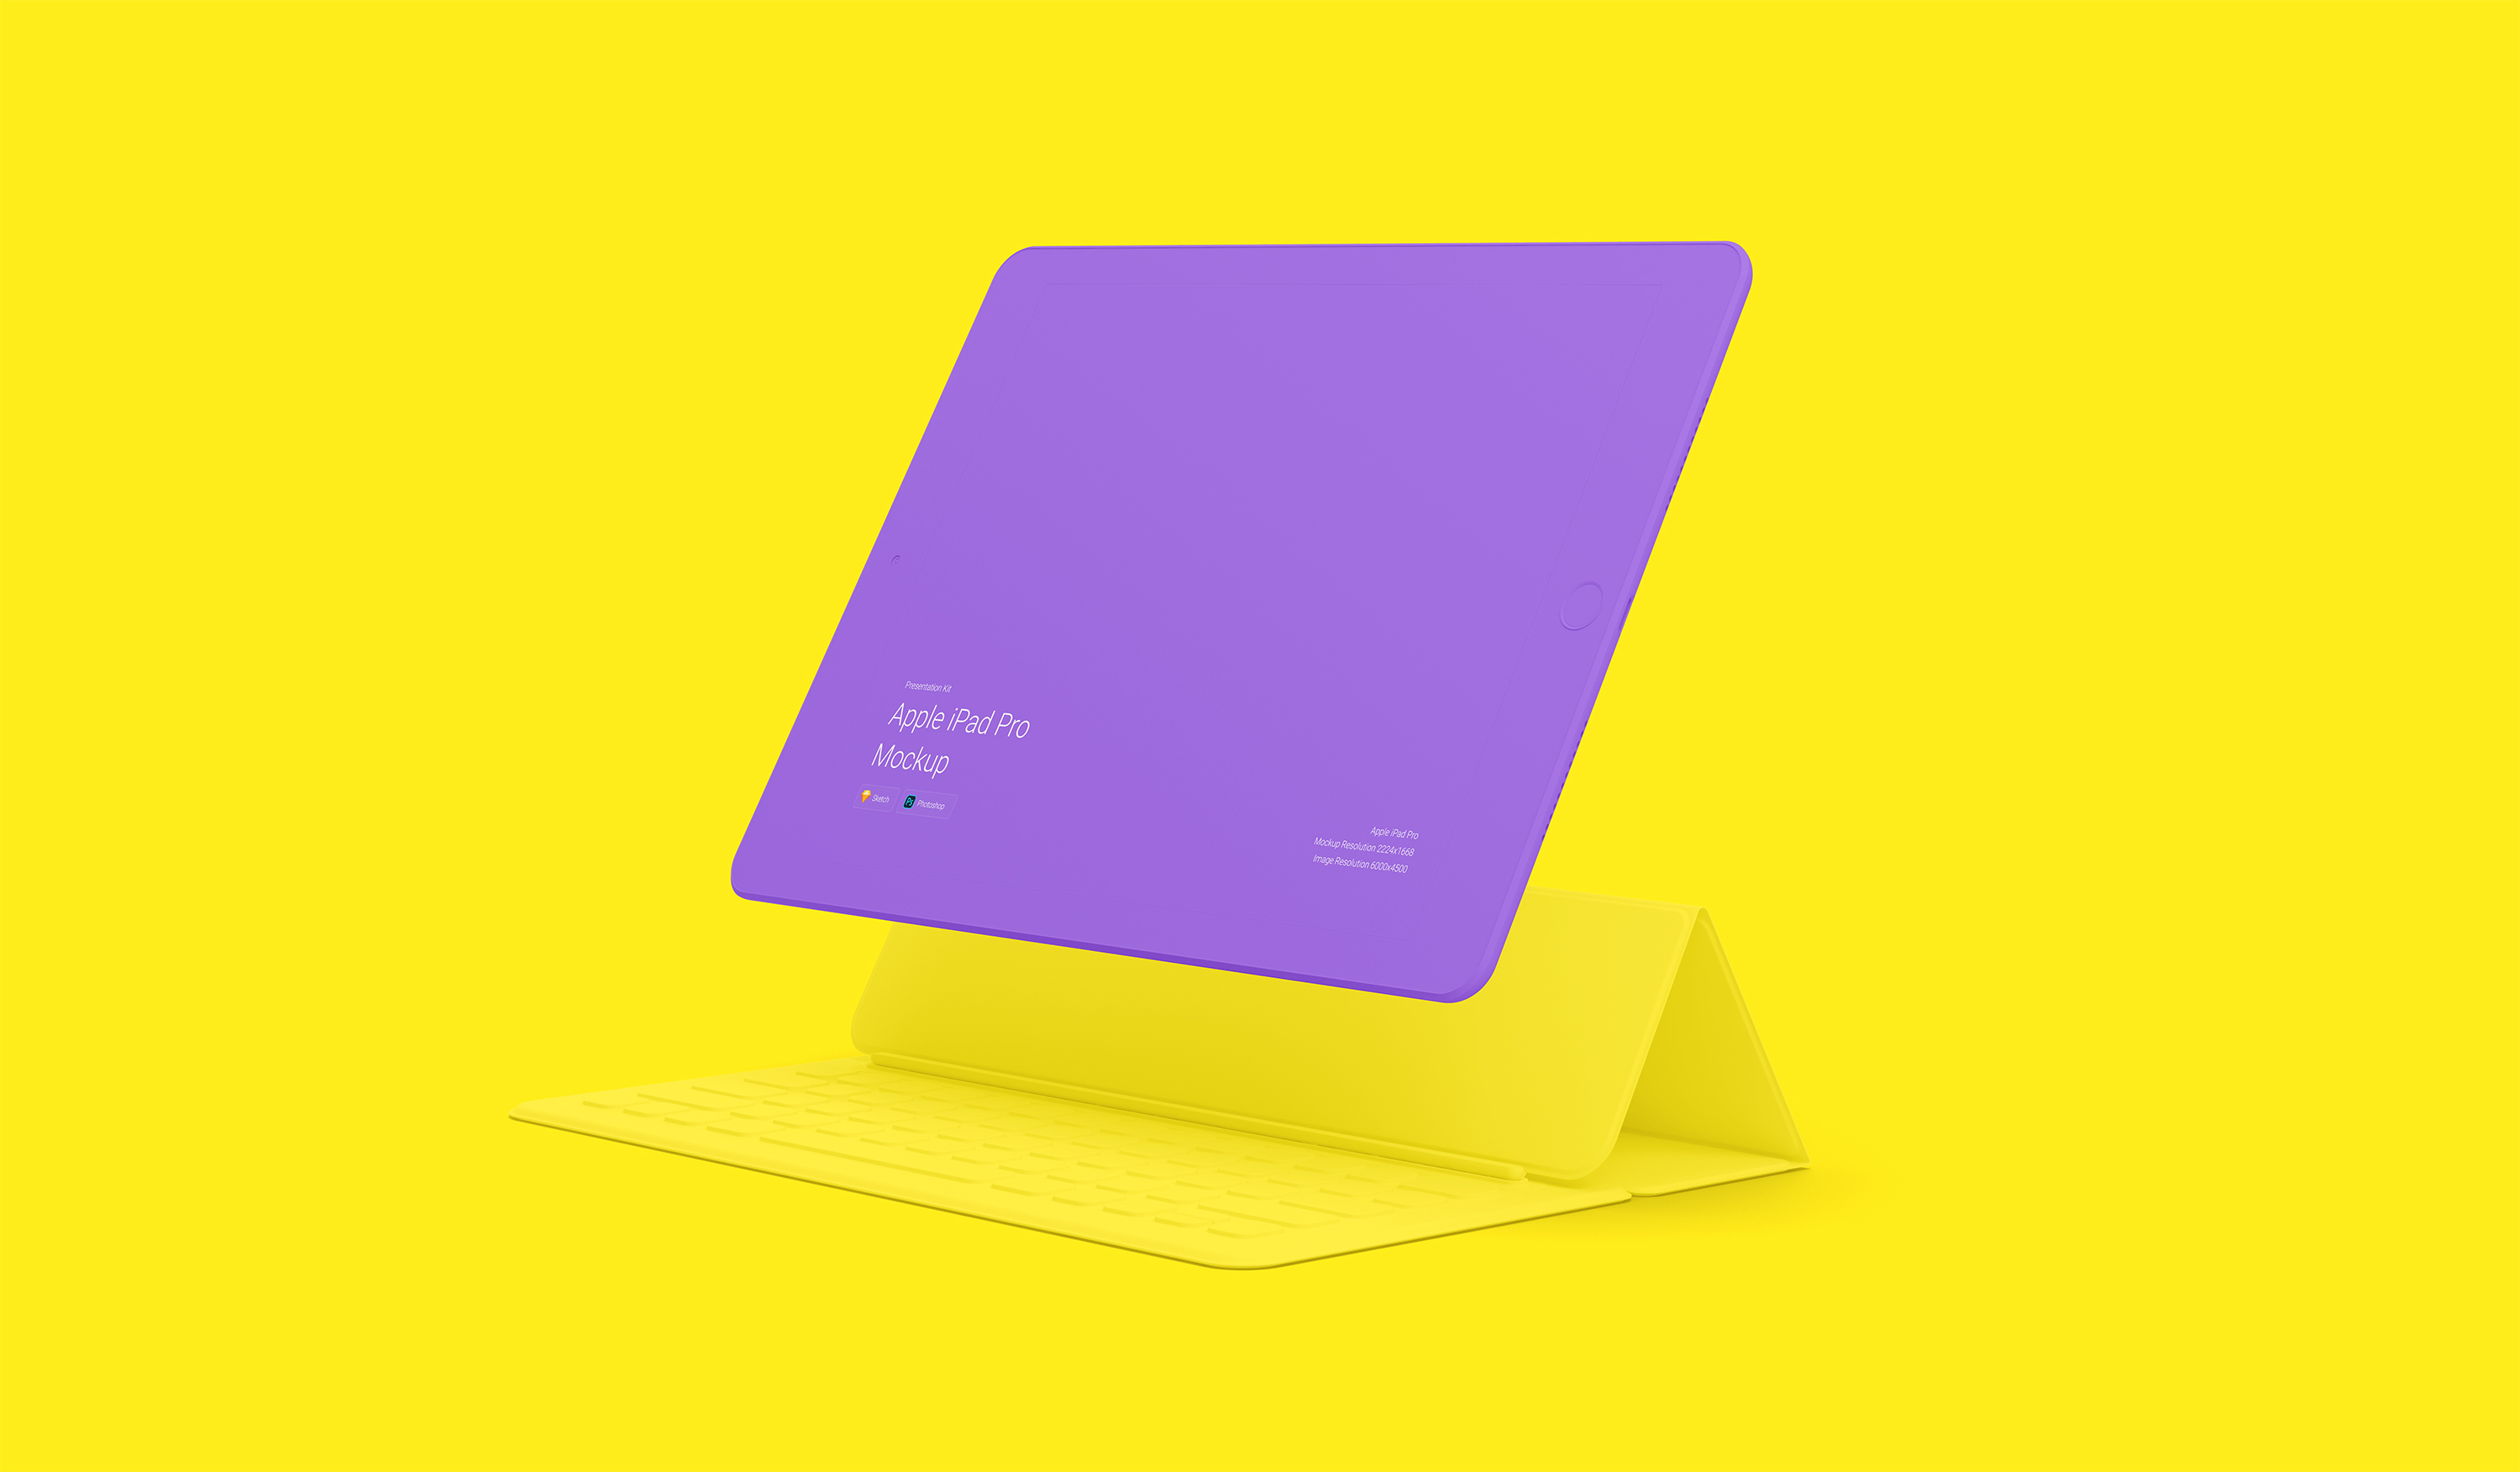 Download Apple iPad Pro Mockup for Sketch and Photoshop